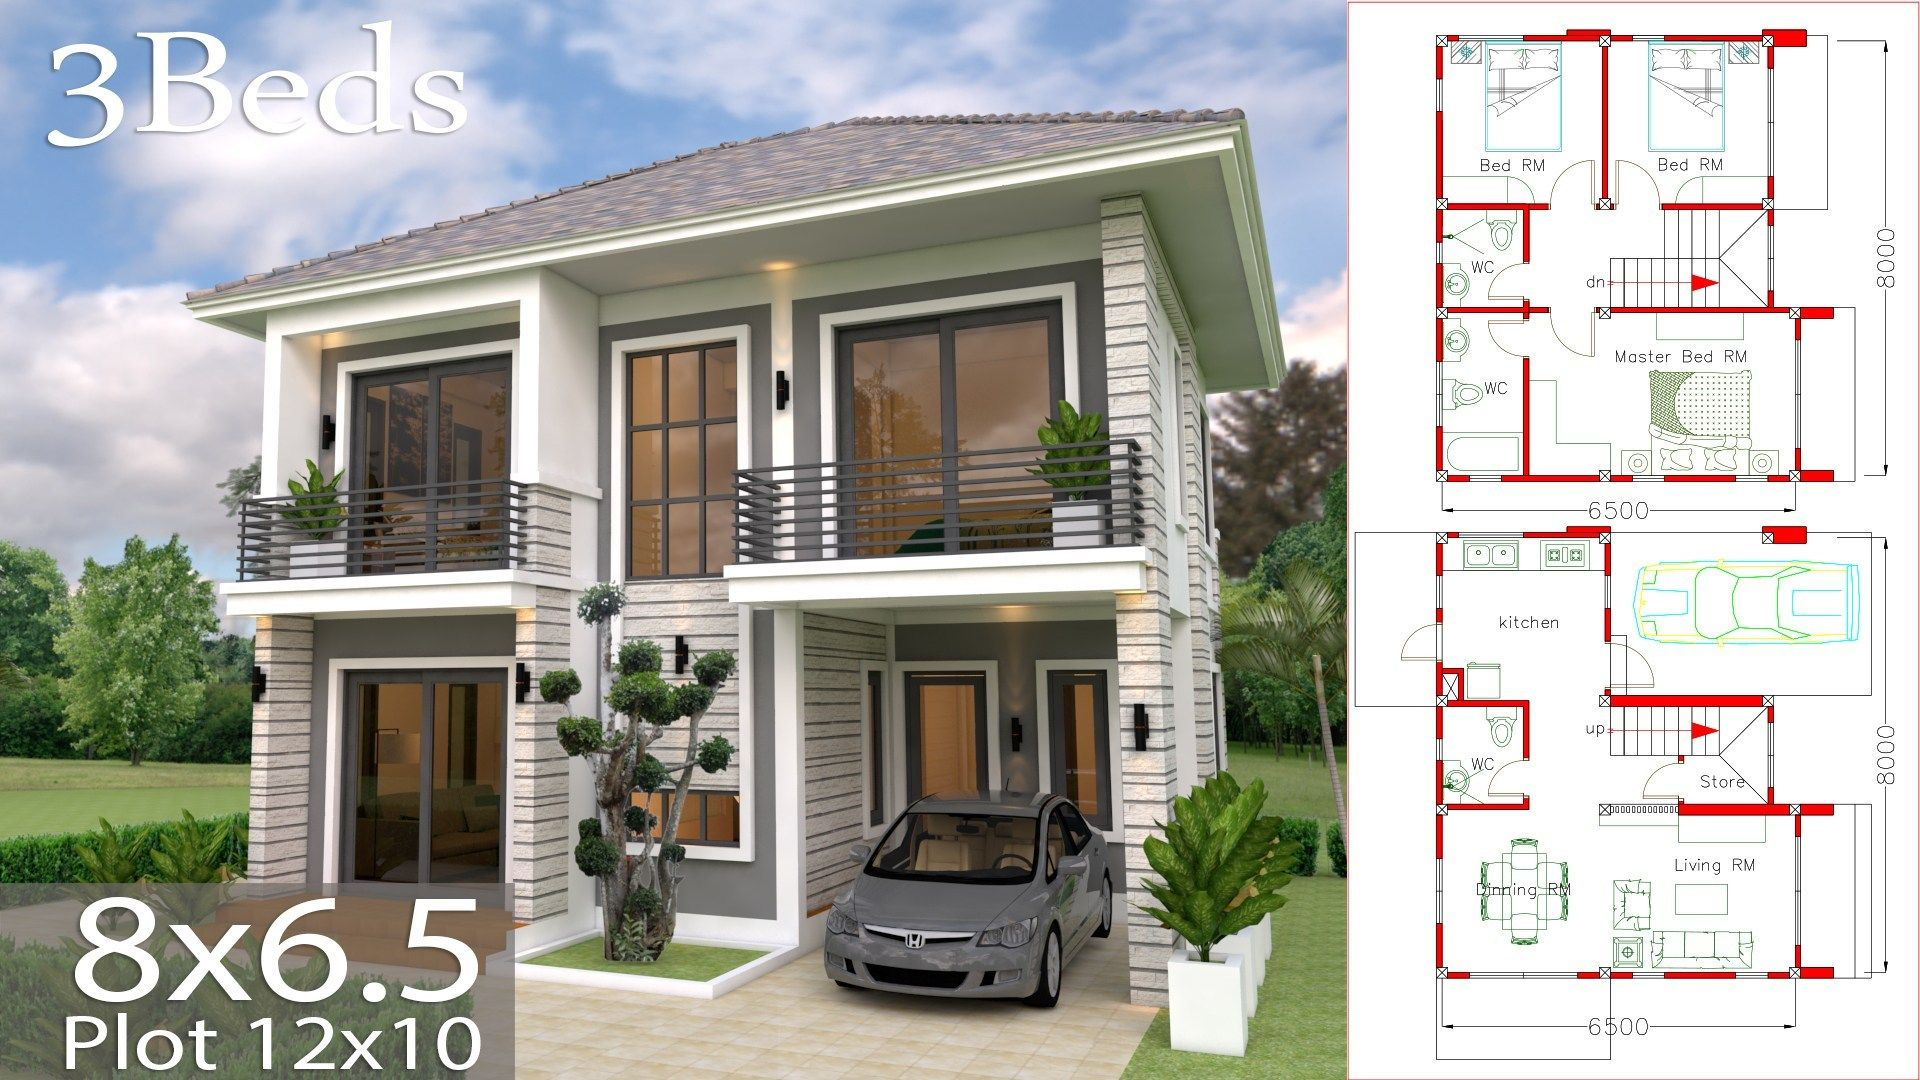 Home Design Plan 8x6 5m With 3 Bedrooms Samphoas Com Architectural House Plans Small House Design Simple House Design